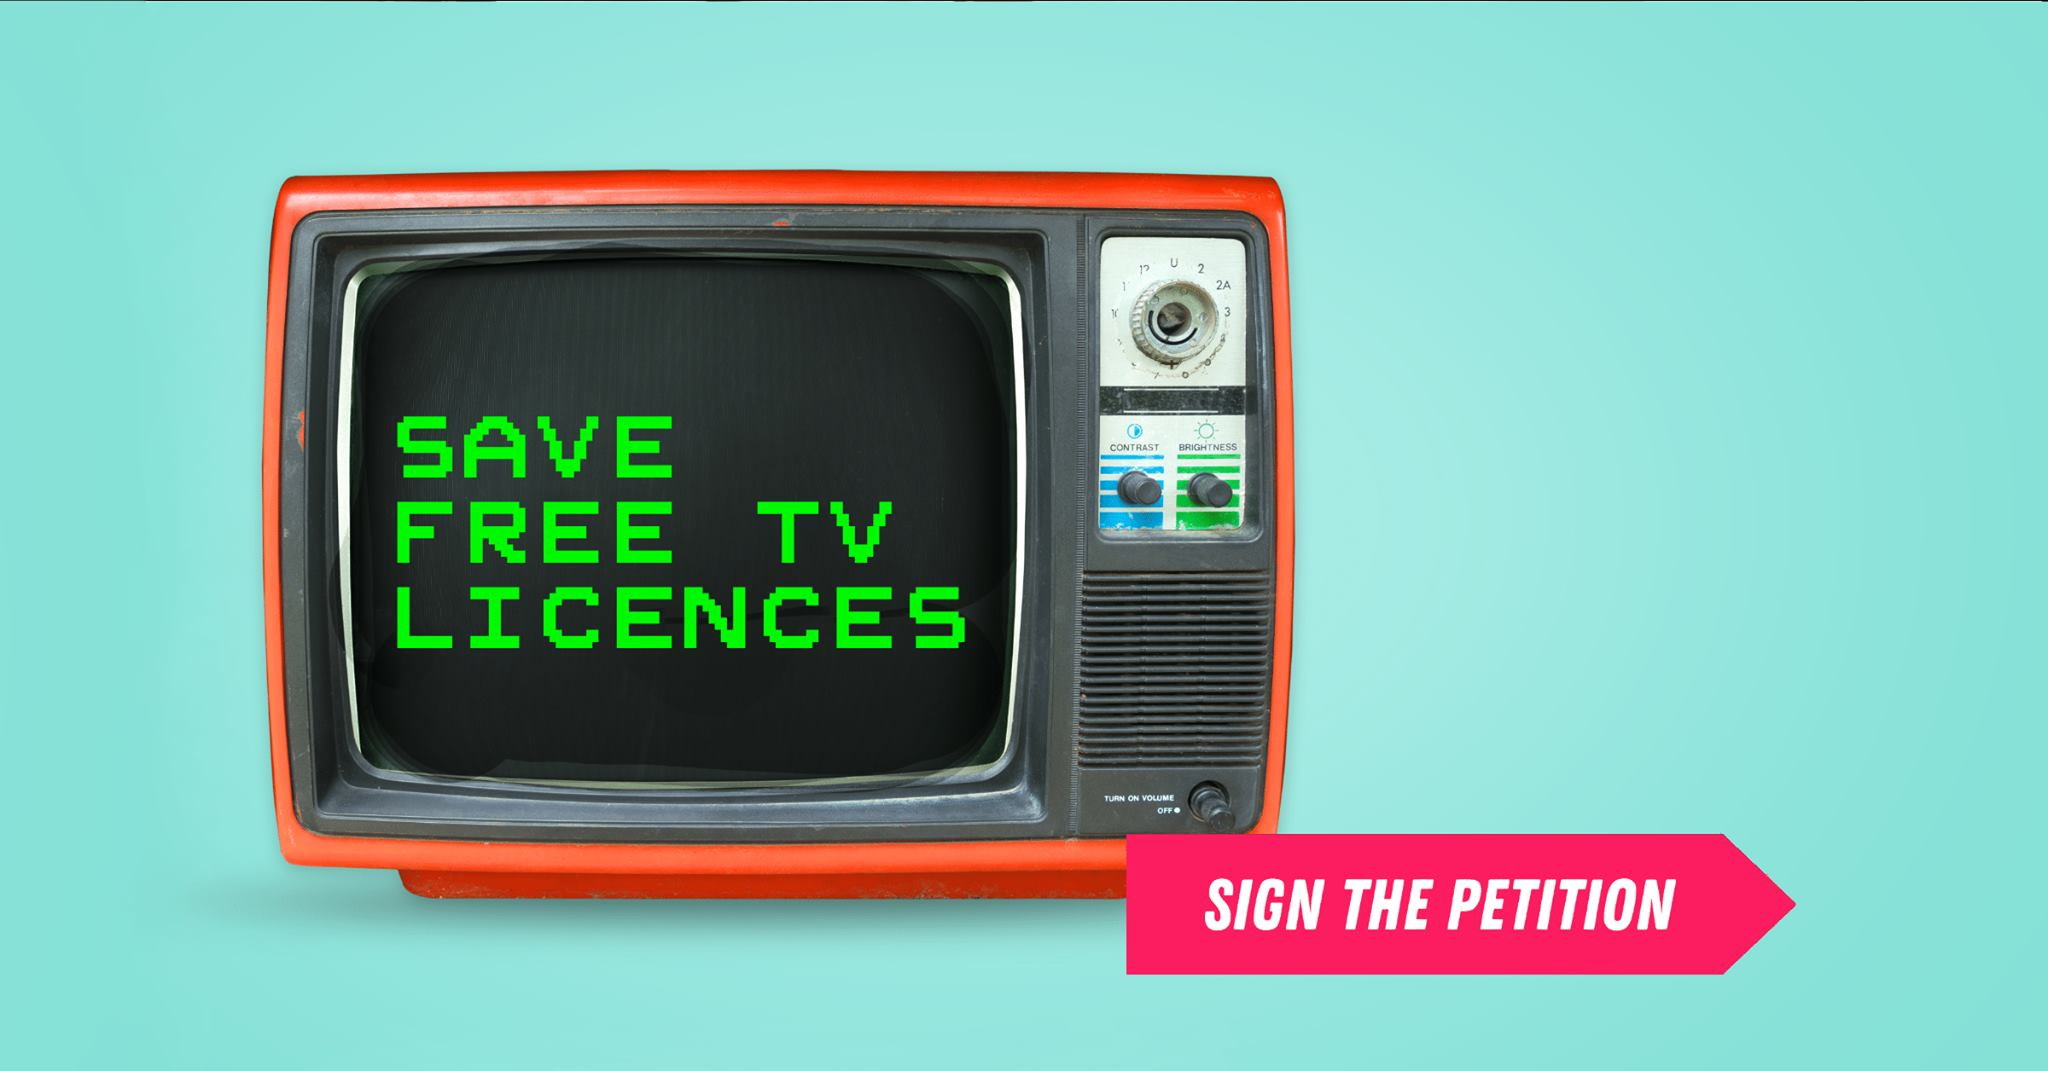 Save Free TV Licences!